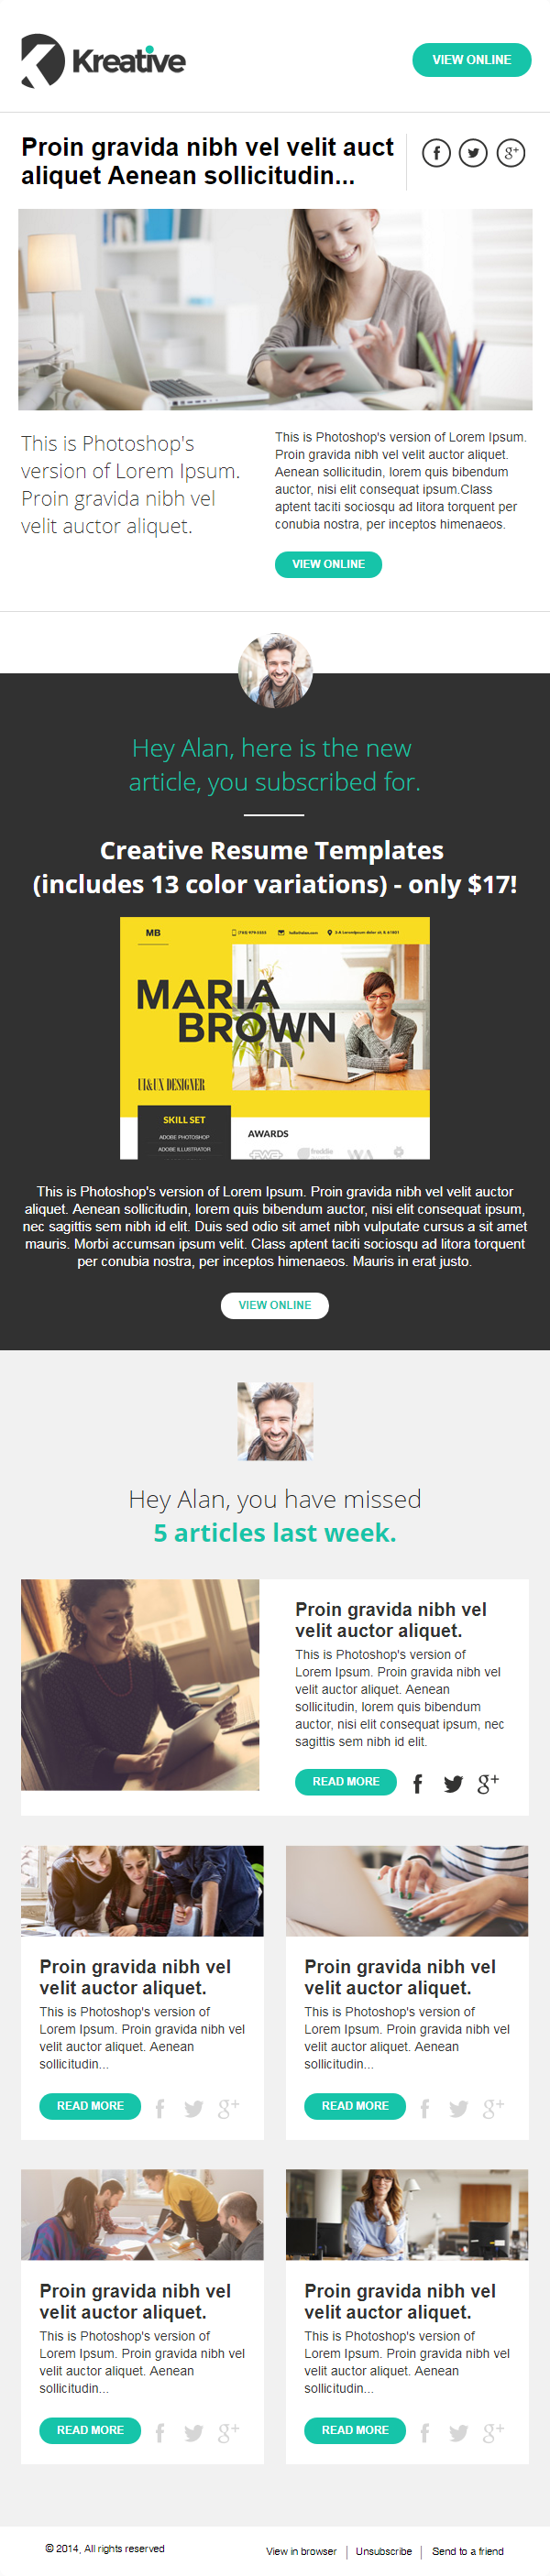 Kreative - Free Newsletter Template